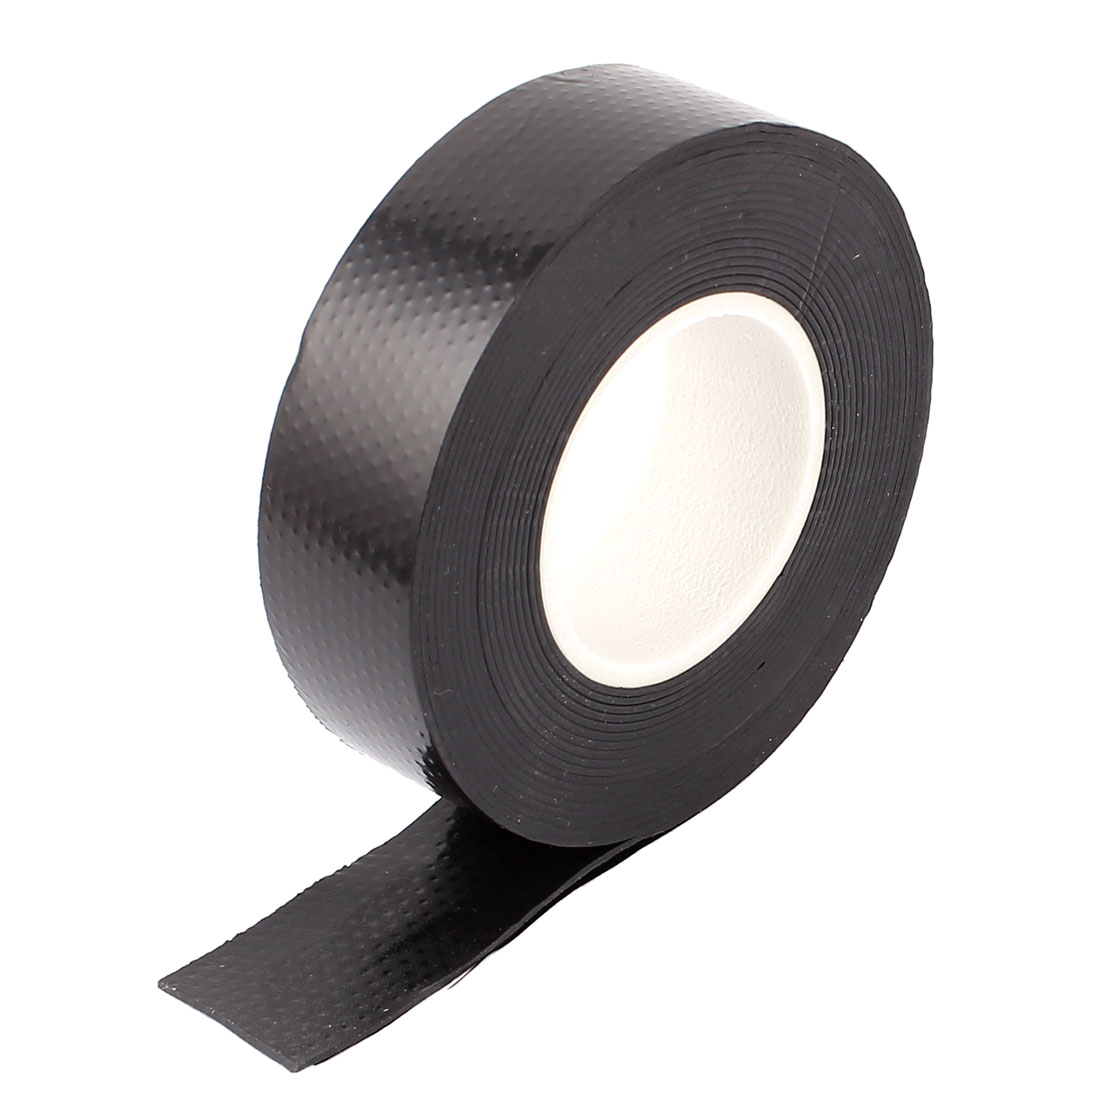 Black 23mm Width PVC Electrical Wire Insulation Self-adhesive Roll Tape